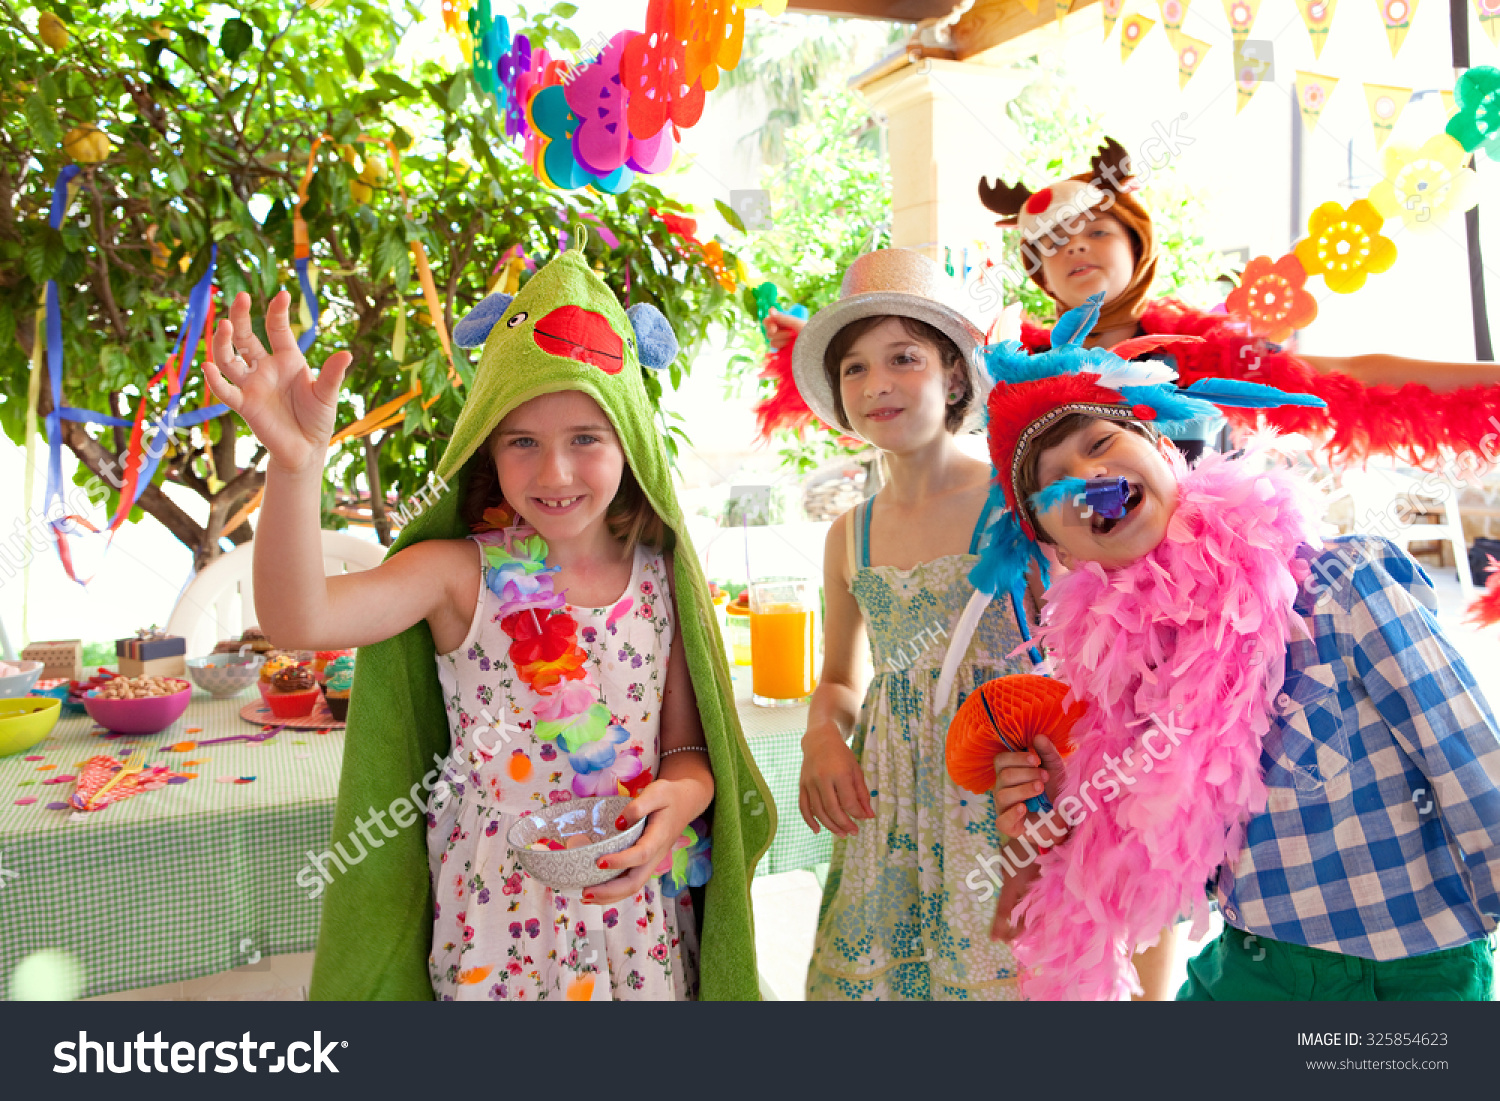 5ab0cc9f6 Group of children dressing up in improvised fancy dresses at a colorful  birthday party in a